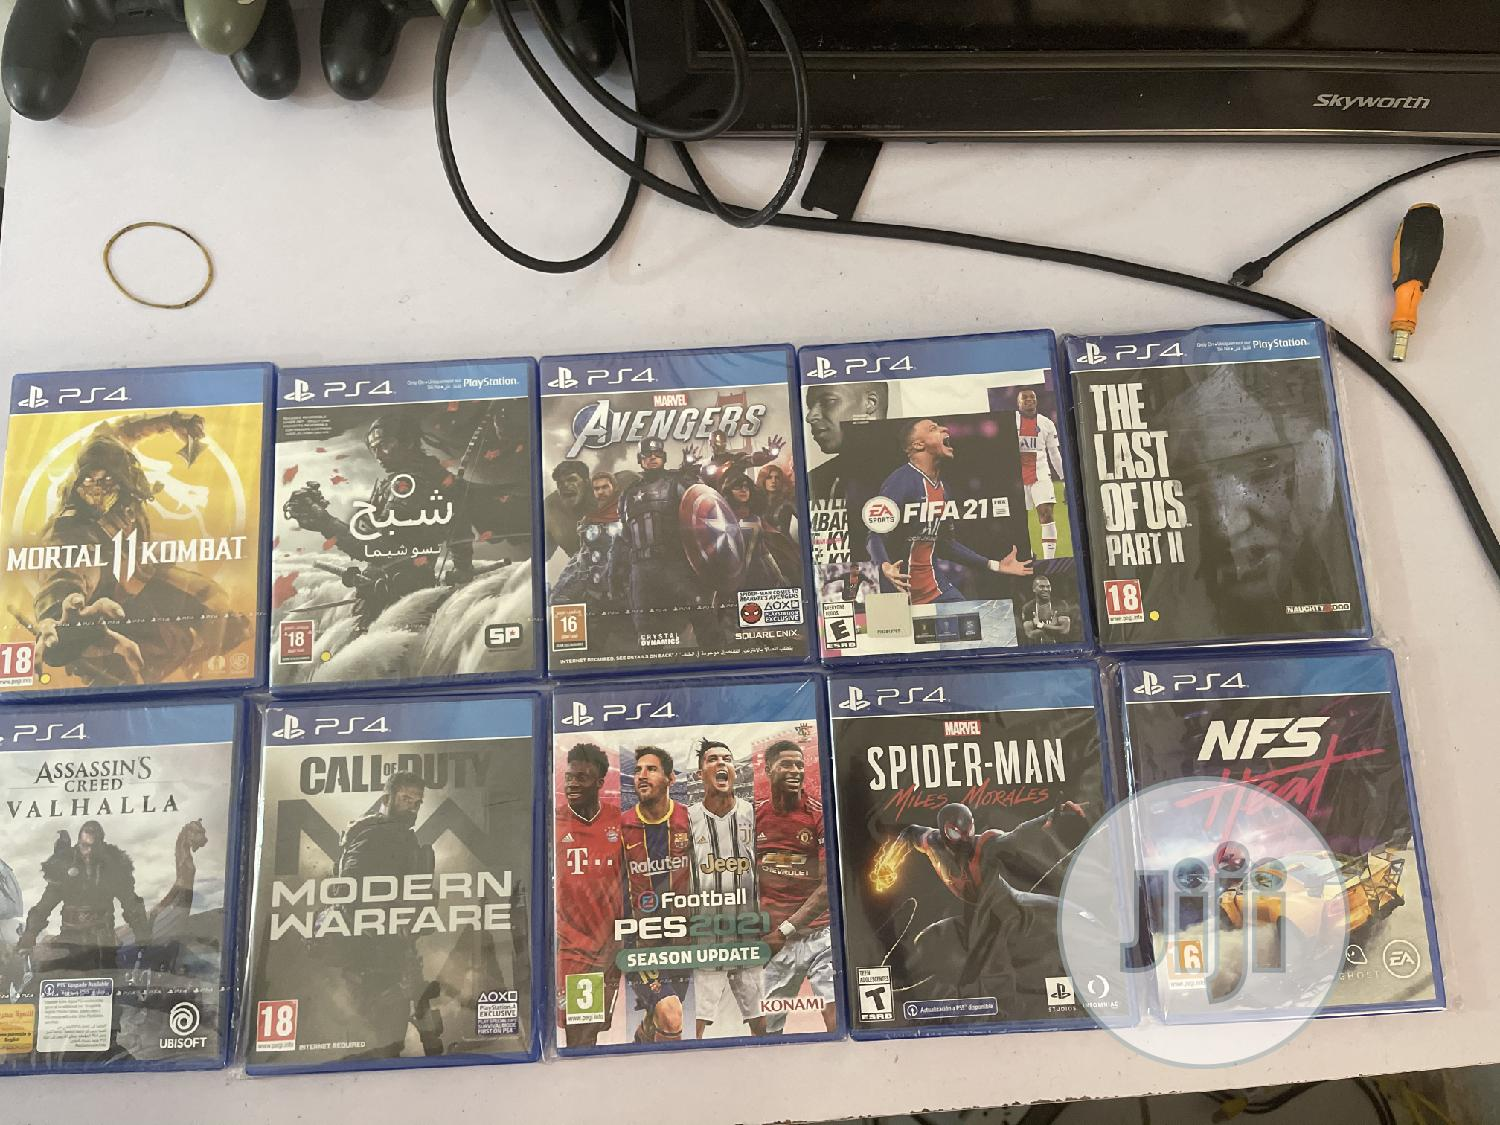 Assassin's Creed Vahala for Both Ps4 and Ps5 | Video Games for sale in Gwarinpa, Abuja (FCT) State, Nigeria